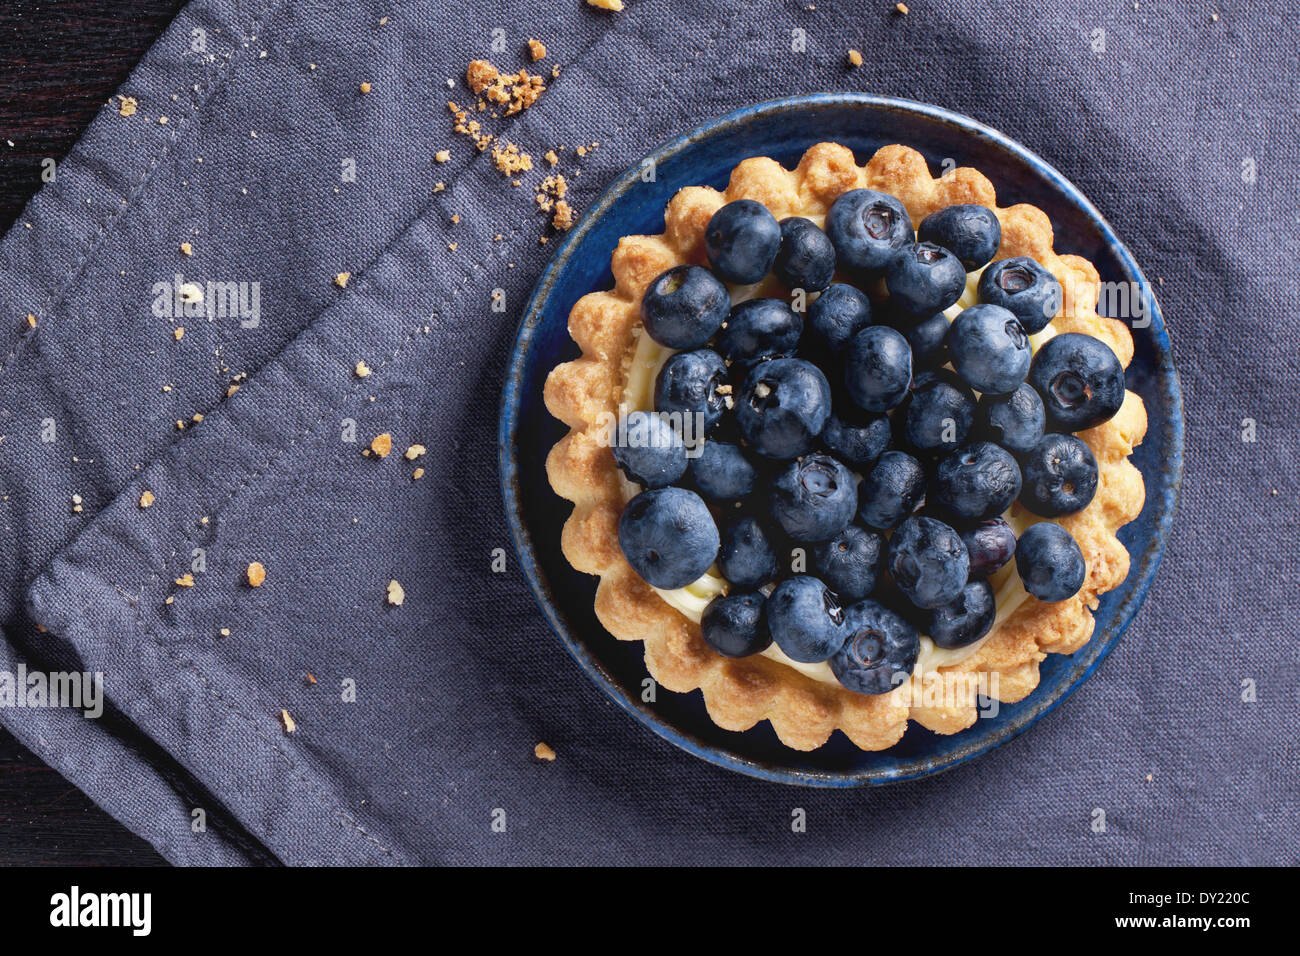 Top view on blueberry tart served on blue ceramic plate over textile napkin. - Stock Image